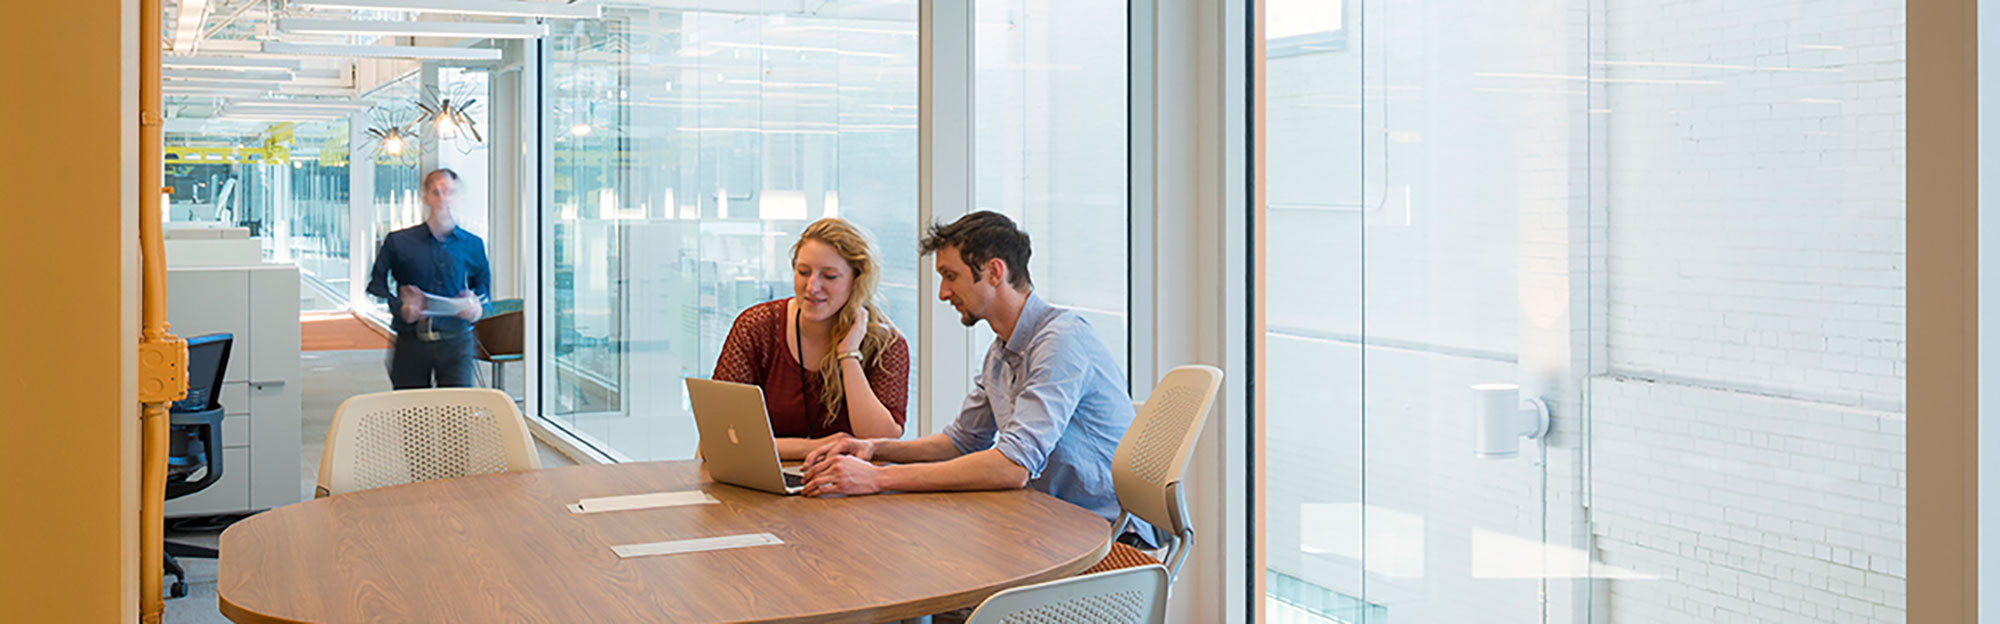 Man and woman collaborating over laptop in office